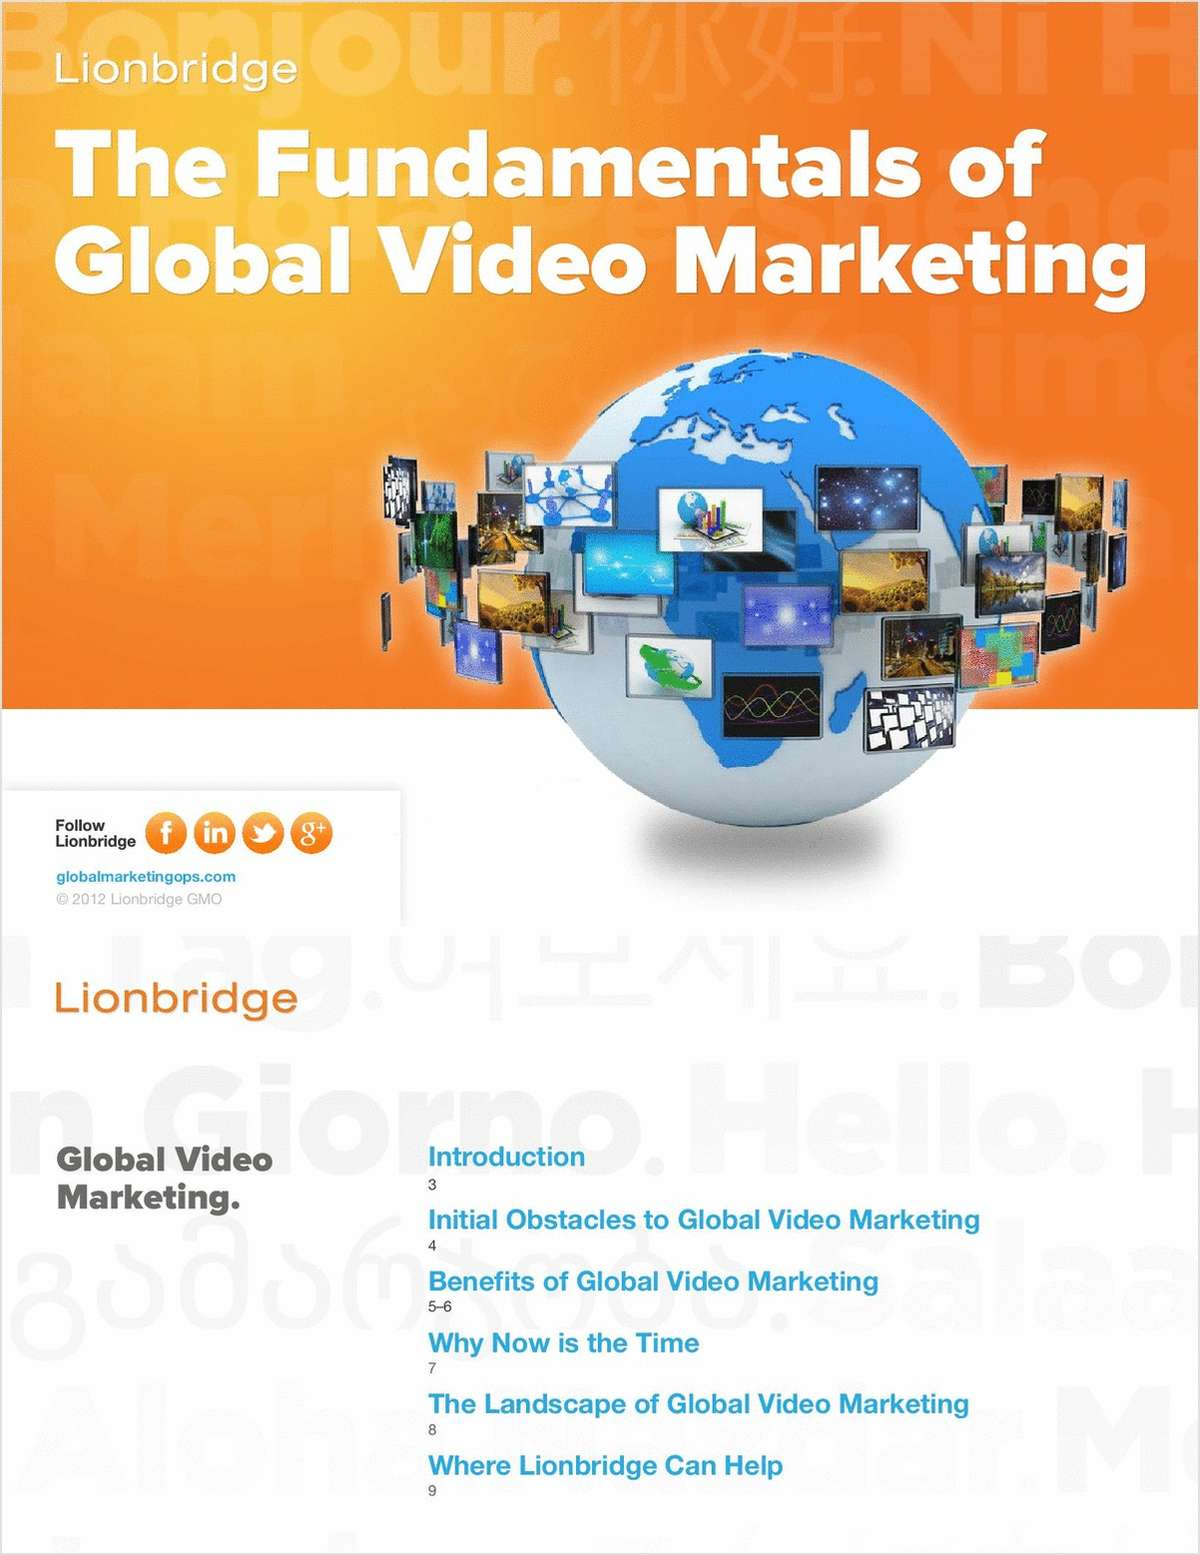 The Fundamentals of Global Video Marketing